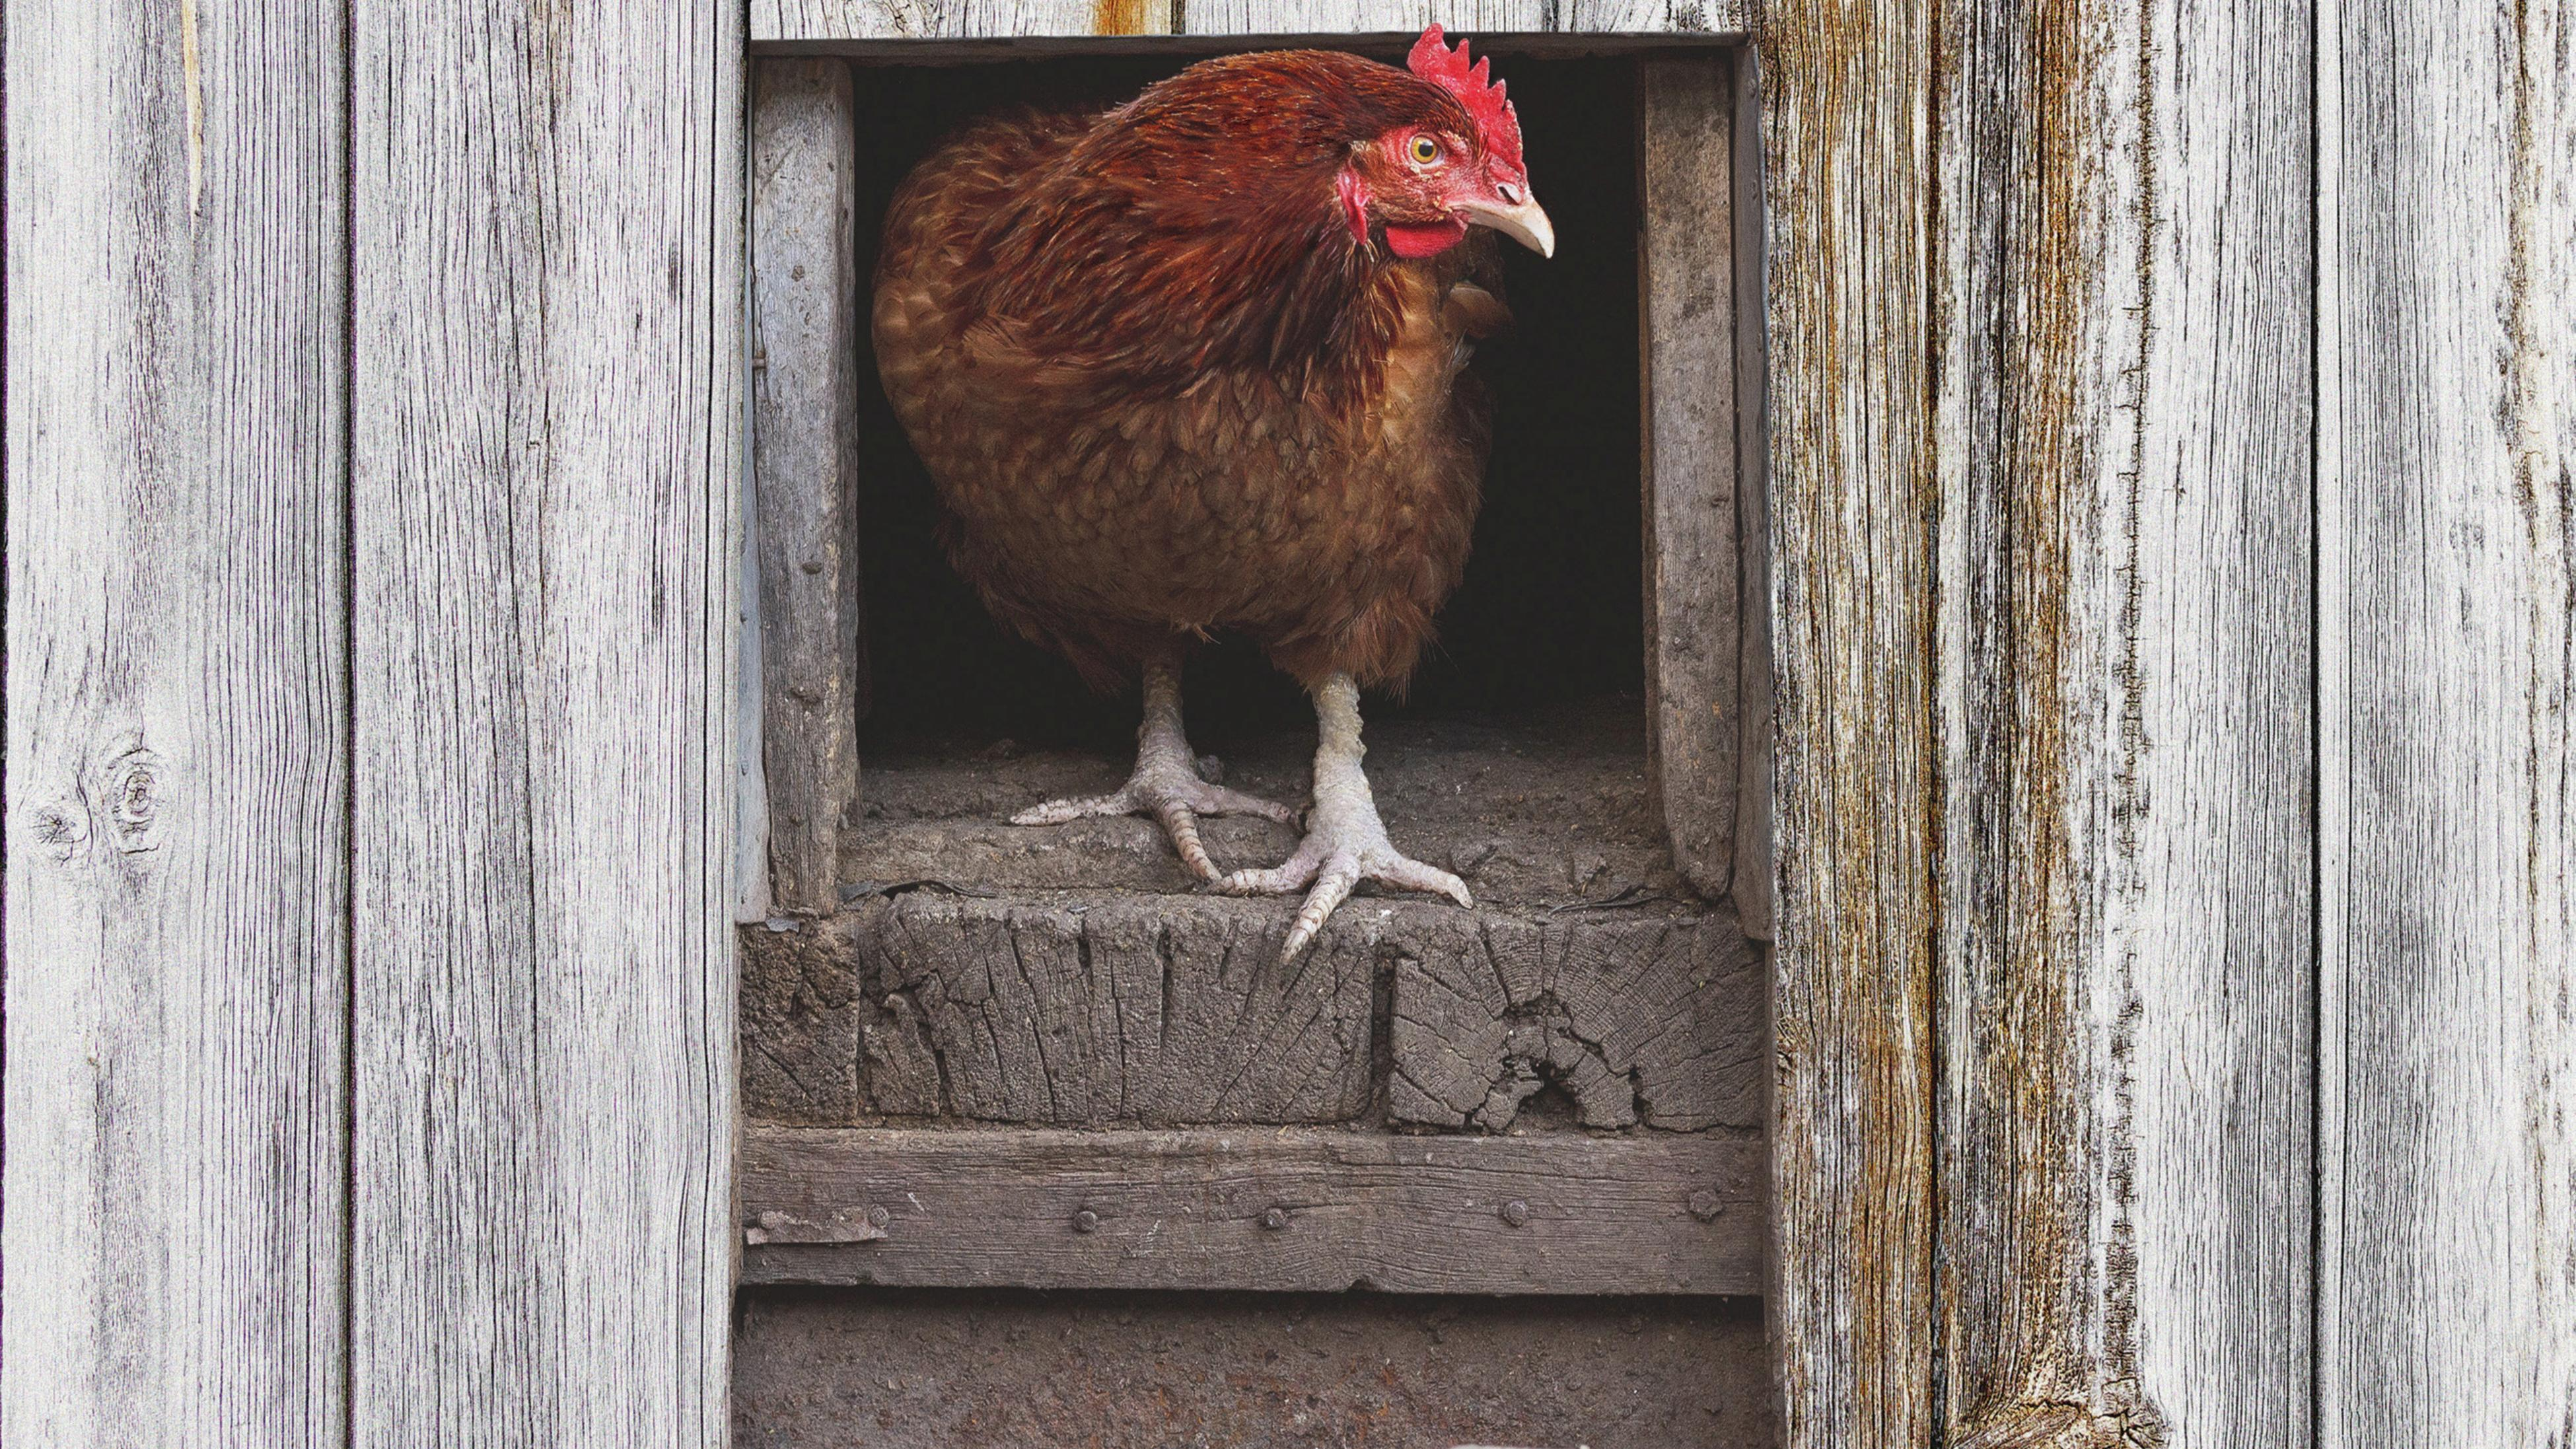 Close up of a chicken in a coop.